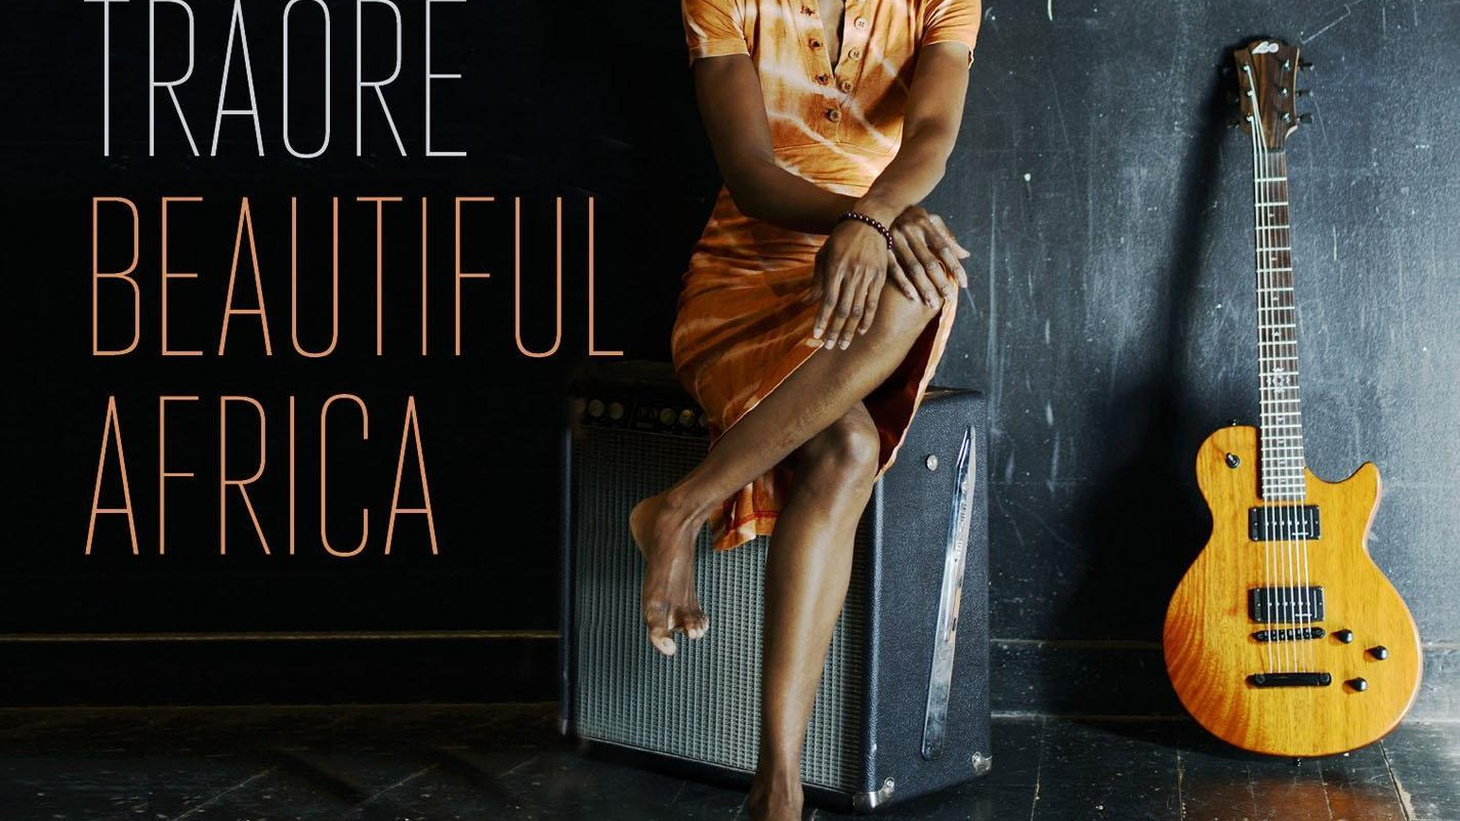 Singer, songwriter and guitarist Rokia Traoréhas always been a sophisticate. Her latest albumBeautiful Africais just as smart and lovely as its creator.